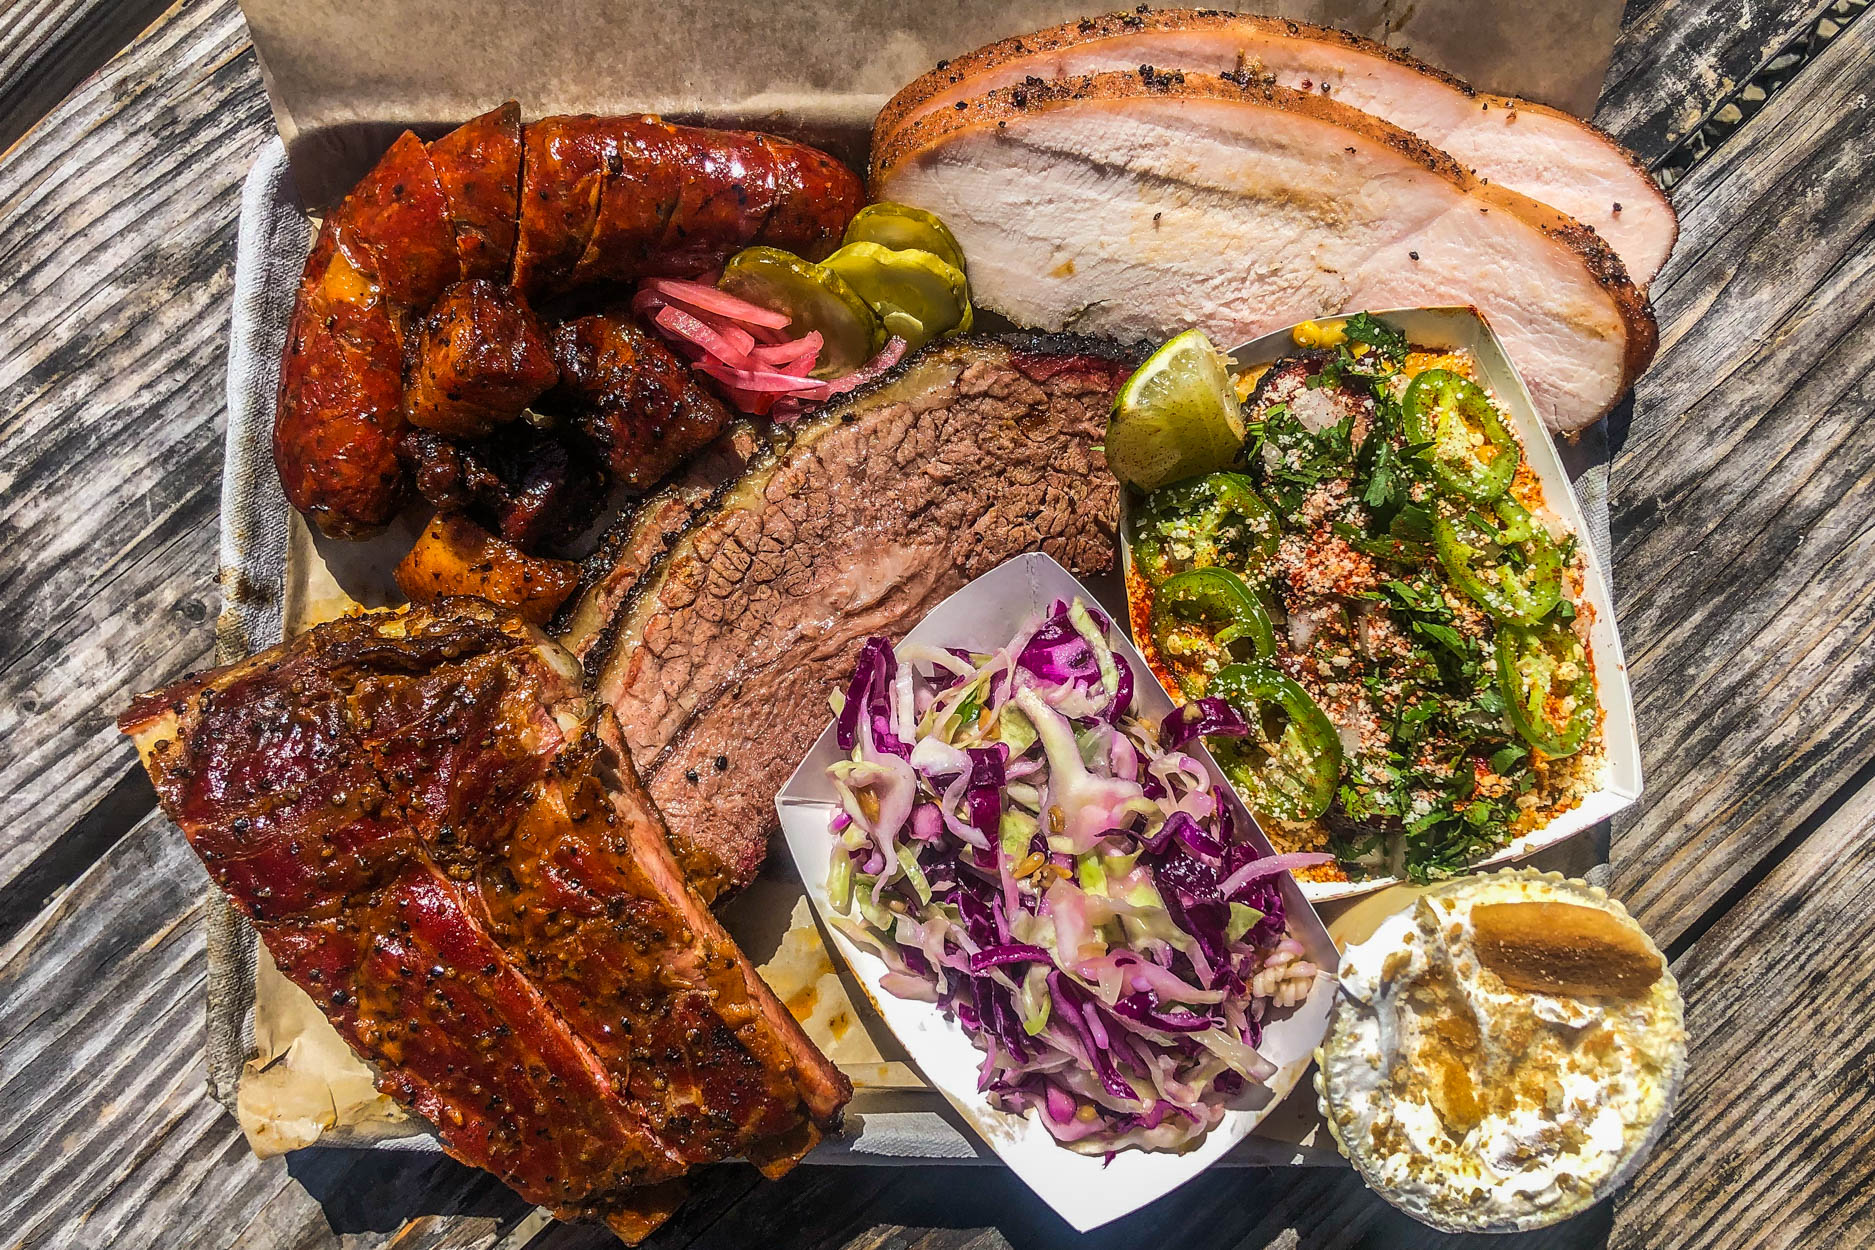 A tray at Holy Trinity Barbecue